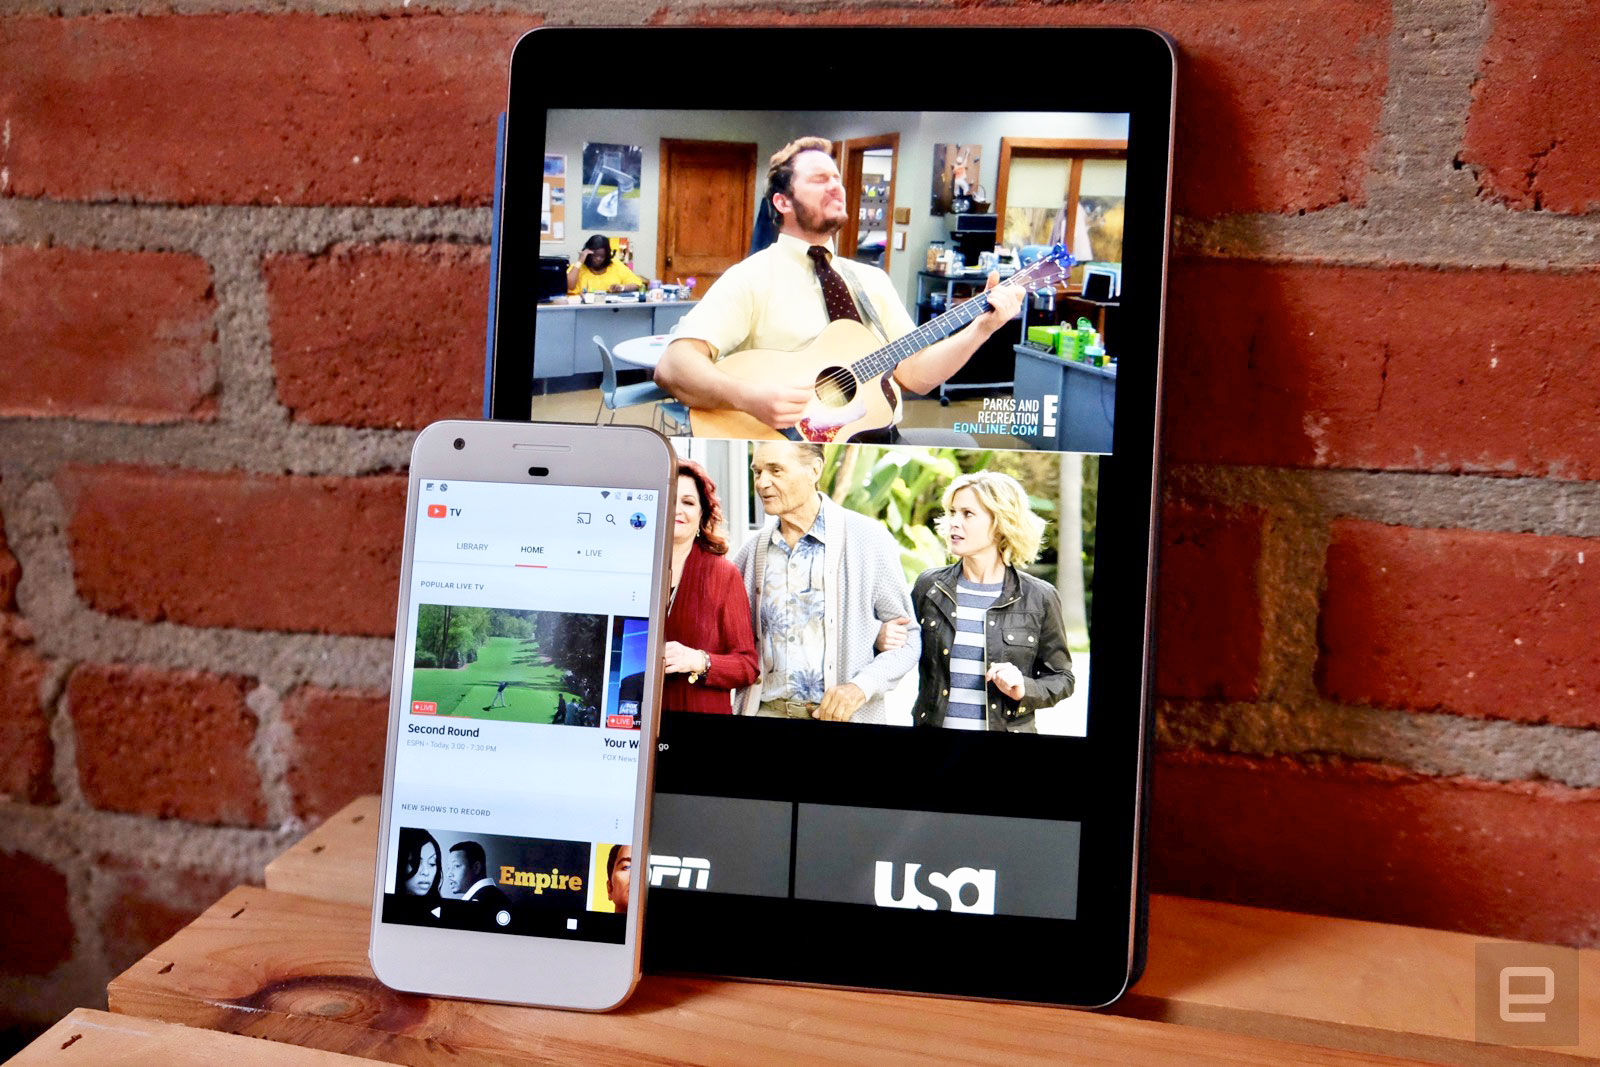 YouTube's live TV service is available in half of all US homes